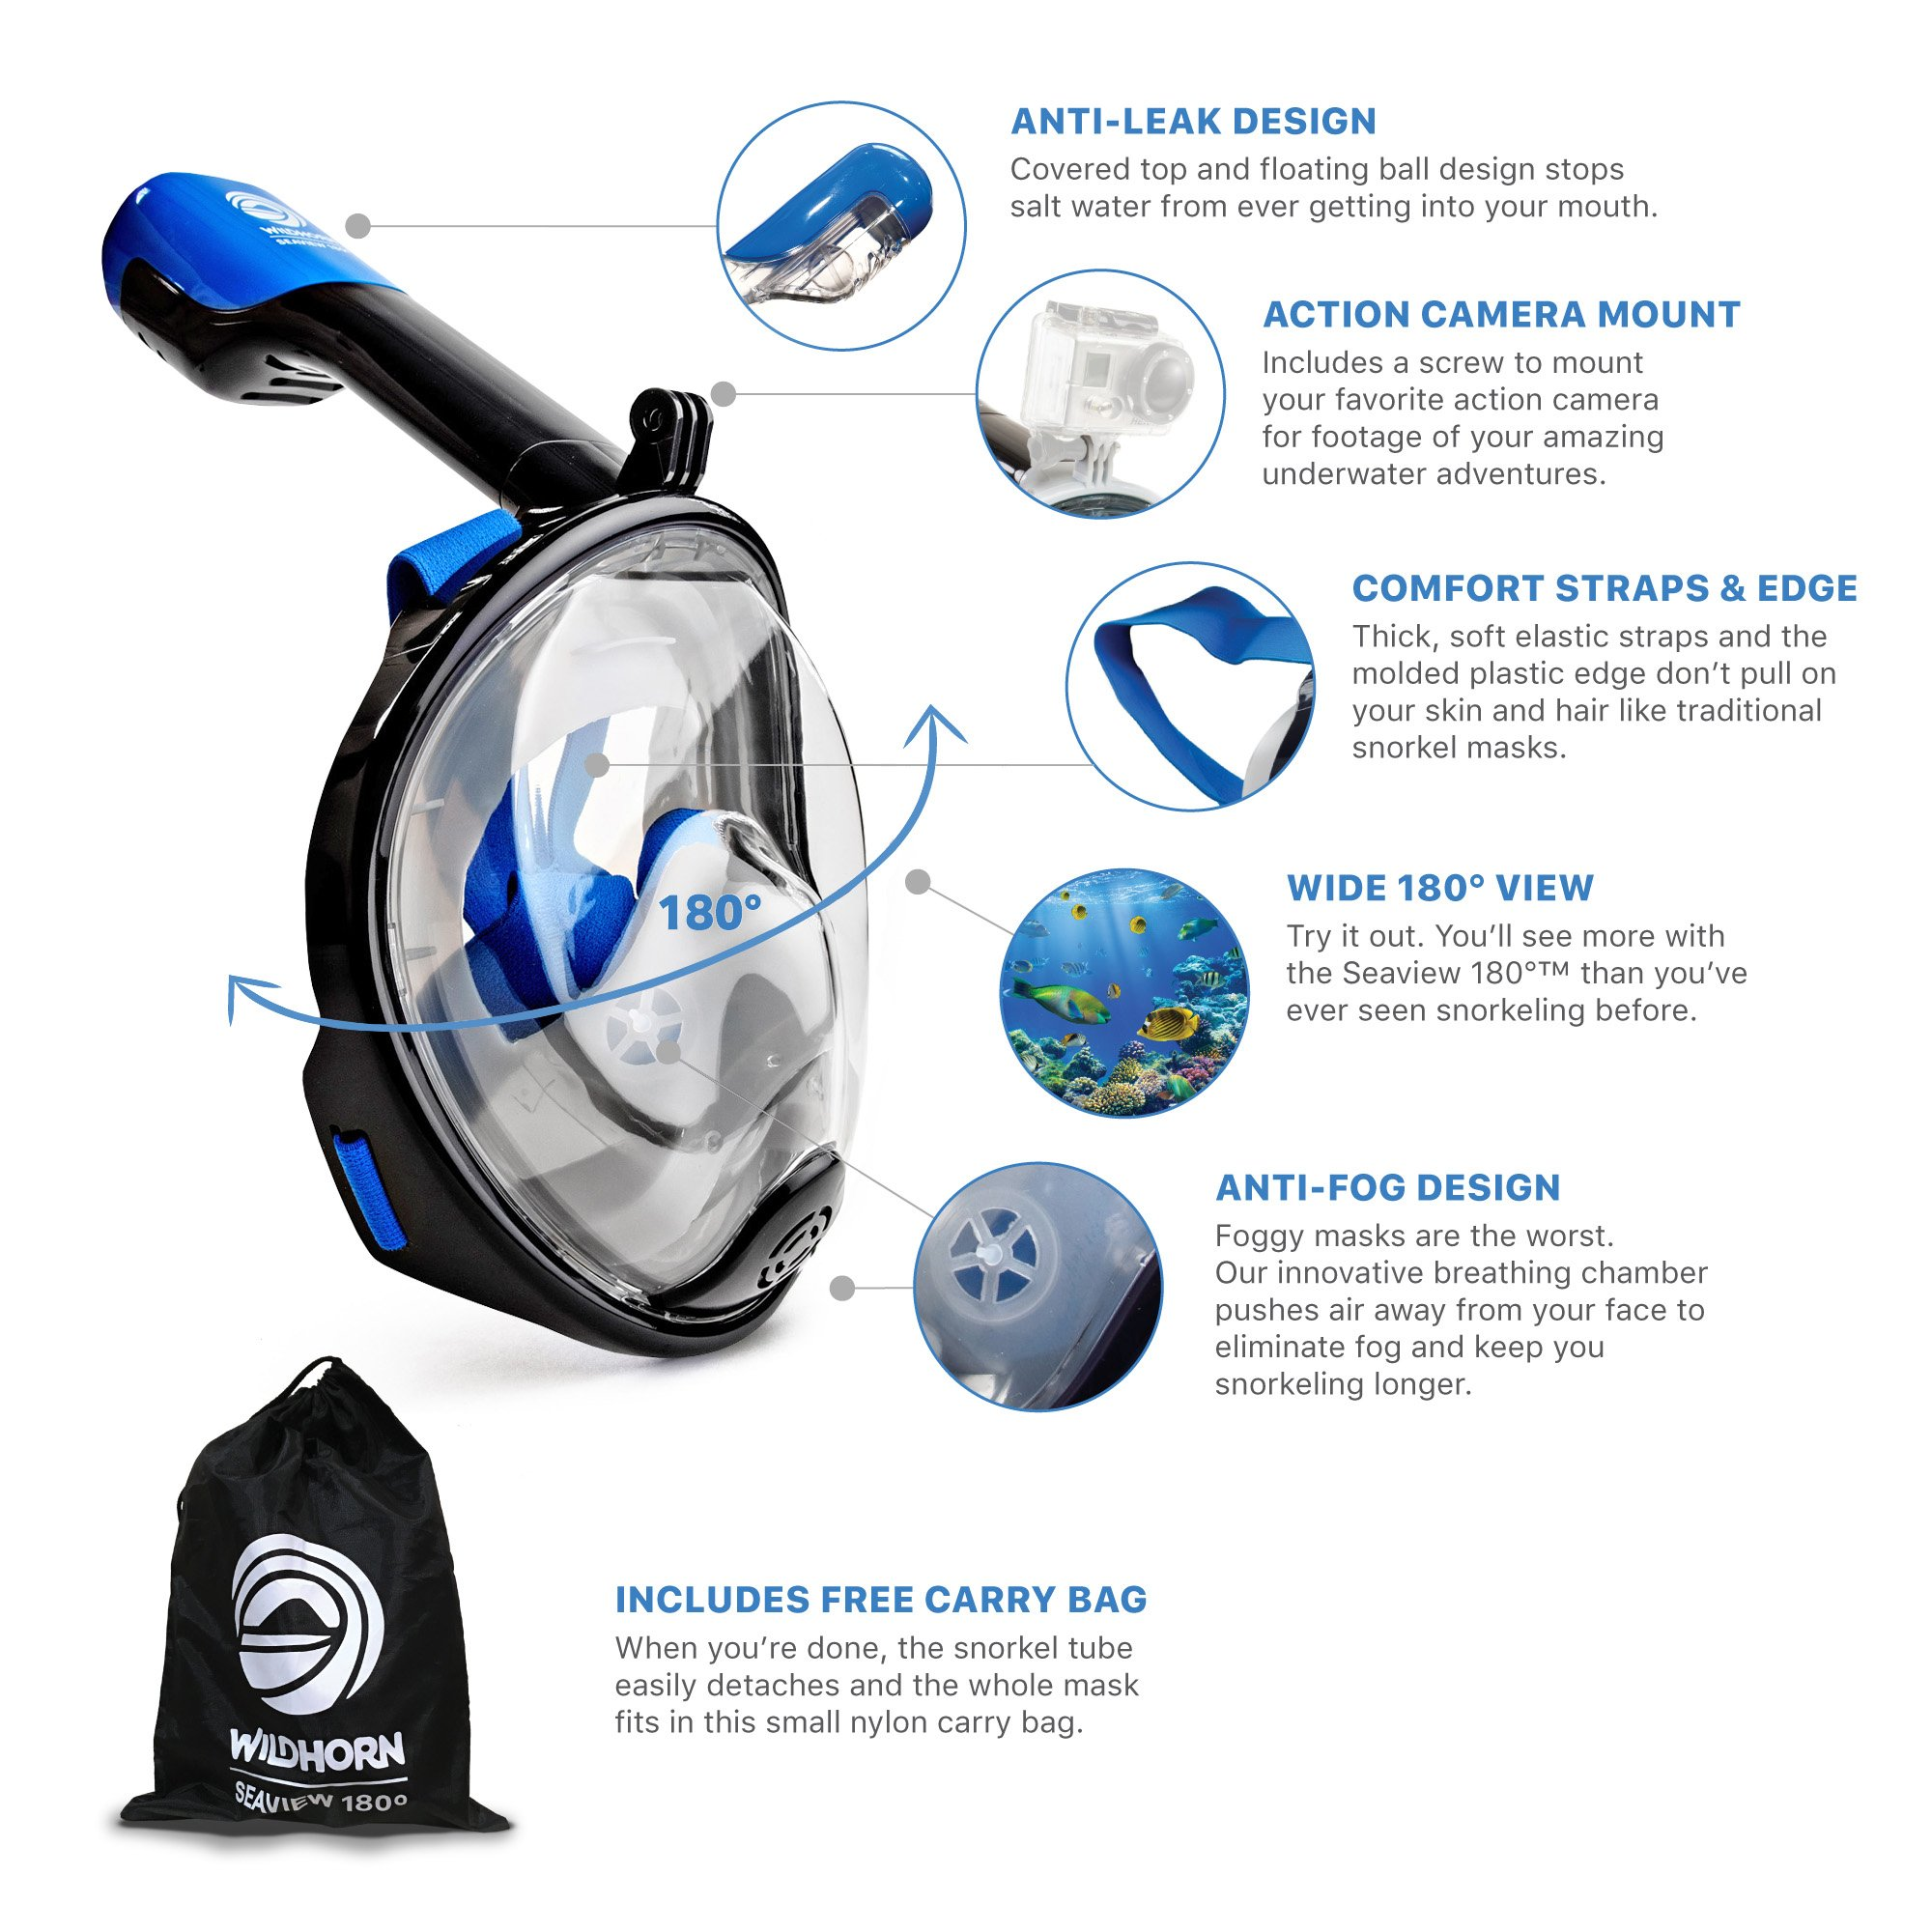 Seaview 180° GoPro Compatible Snorkel Mask- Panoramic Full Face Design. See More With Larger Viewing Area Than Traditional Masks. Prevents Gag Reflex with Tubeless Design (Navy, XS) by WildHorn Outfitters (Image #3)